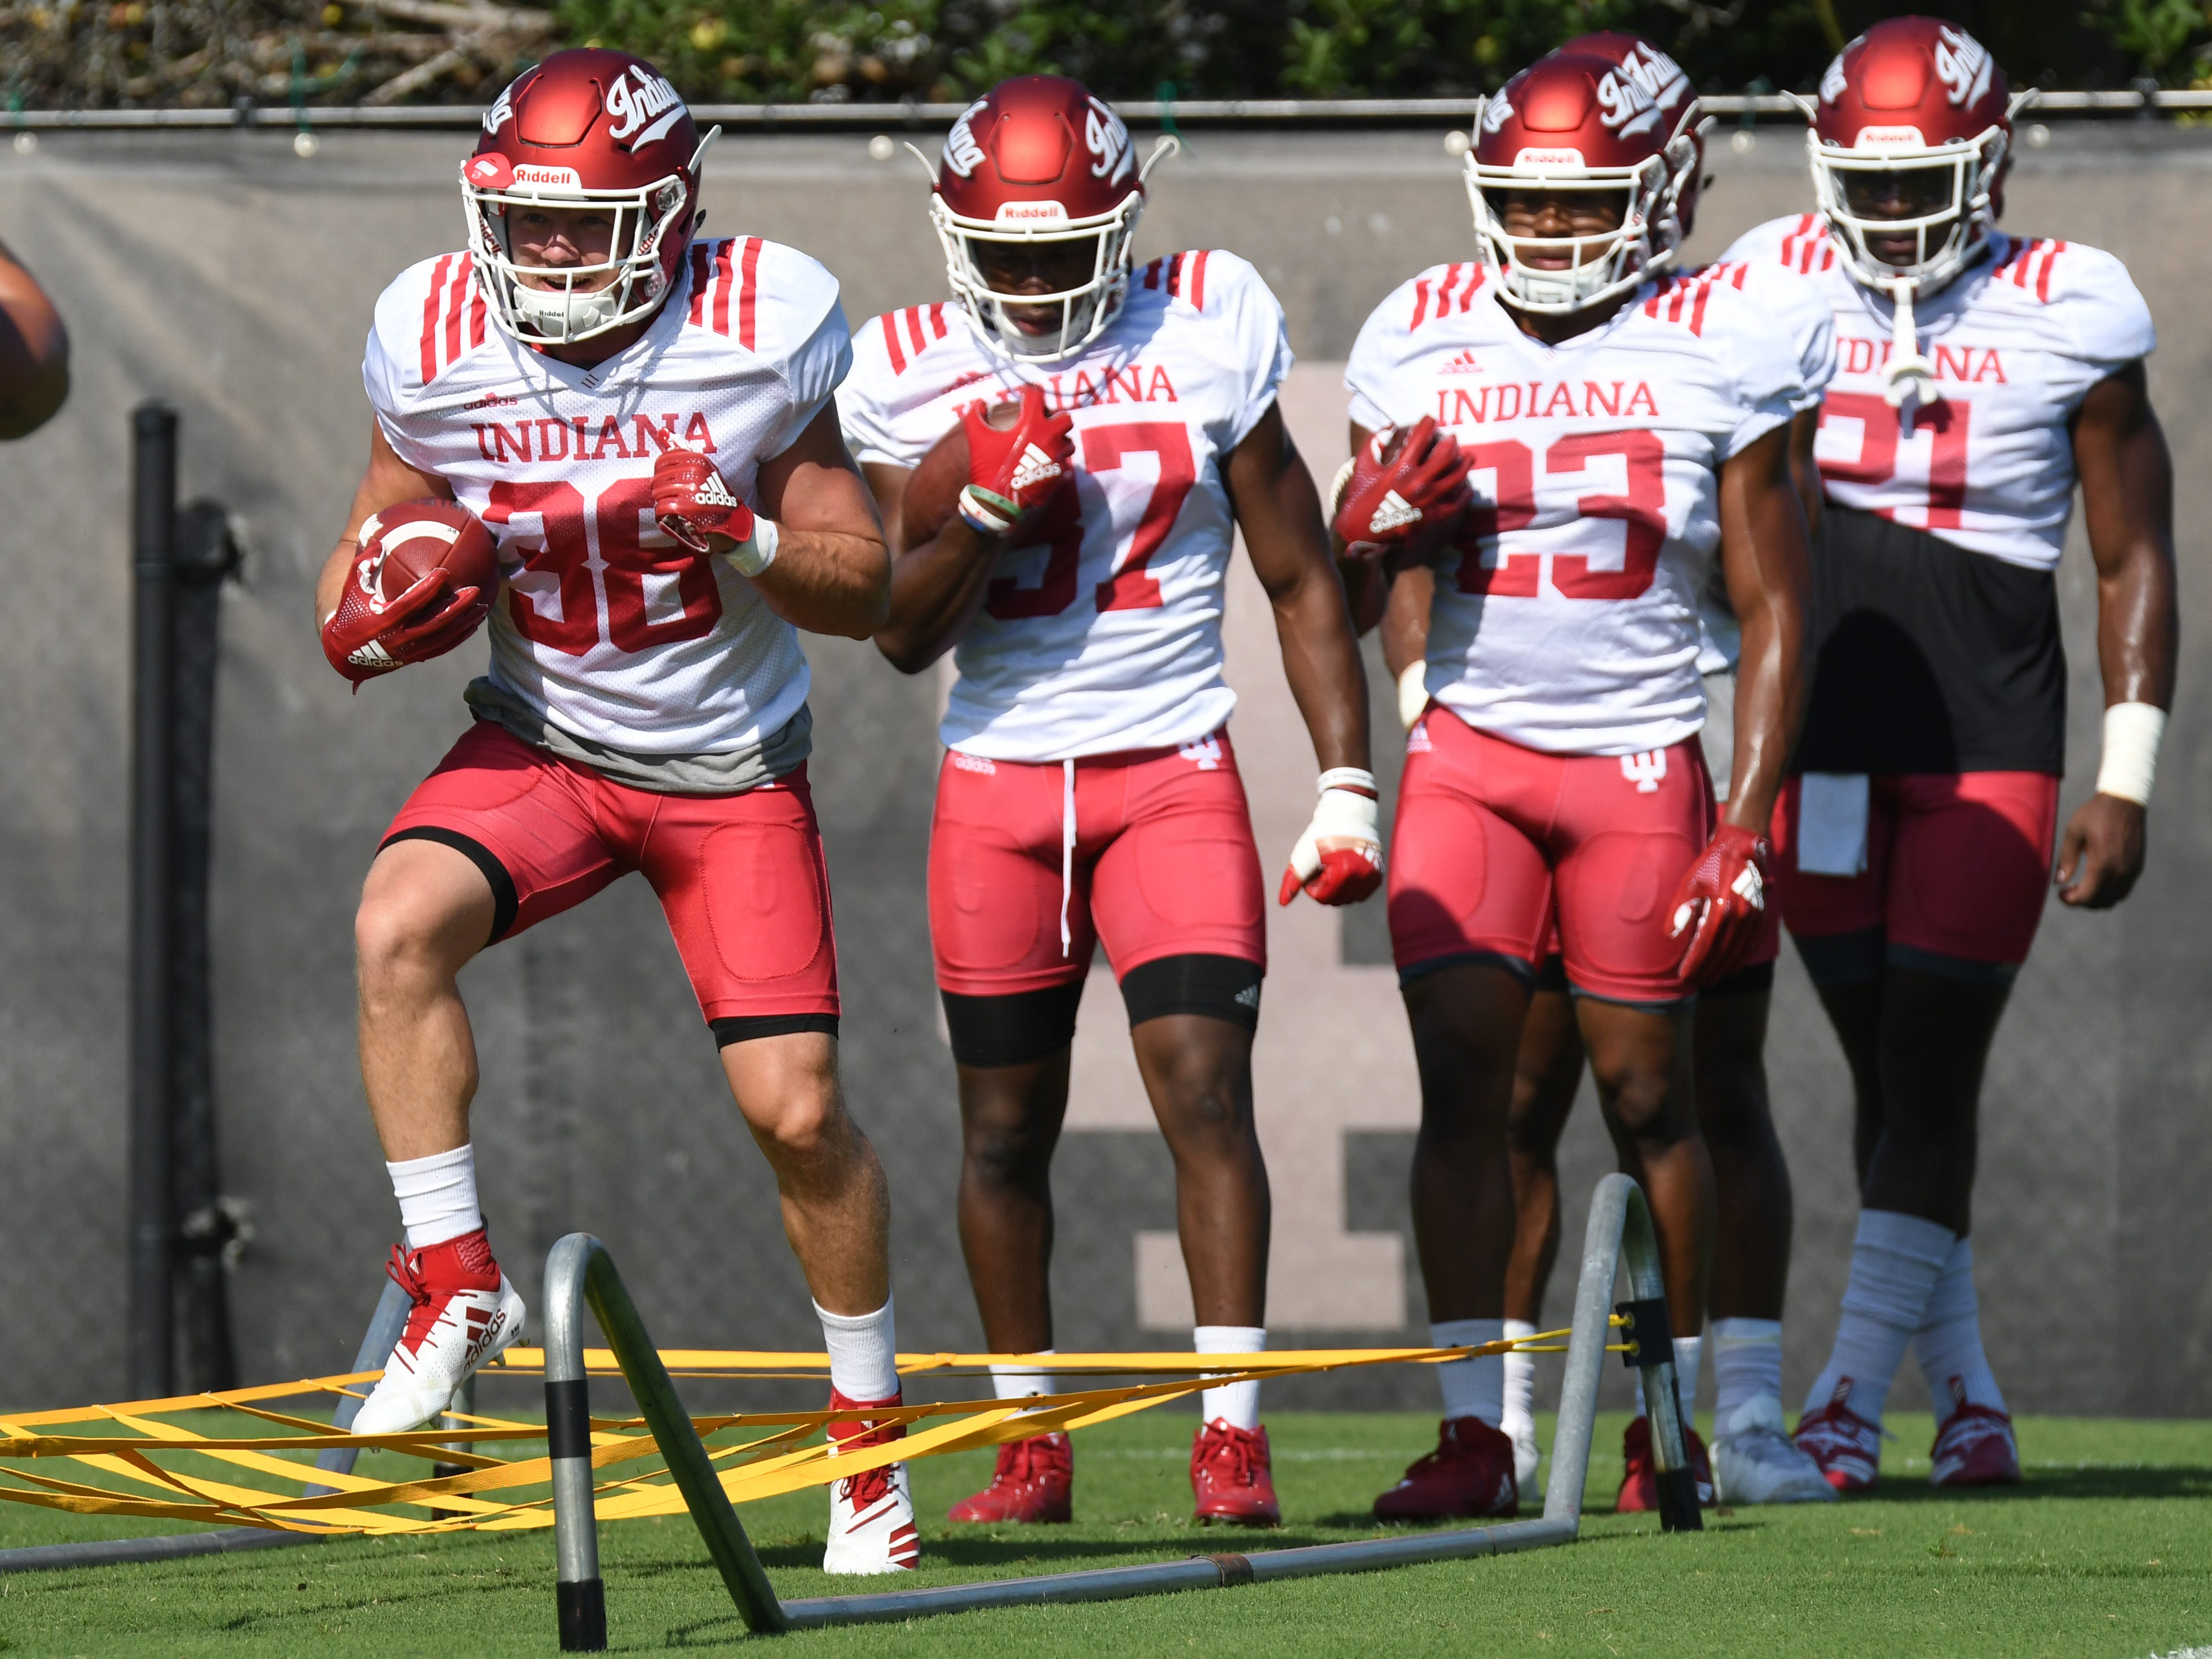 Indiana Hoosiers running back Connor Thomas (38) participates in drills during practice at Mellencamp Pavilion in Bloomington, Ind., on Monday, August 6, 2018.